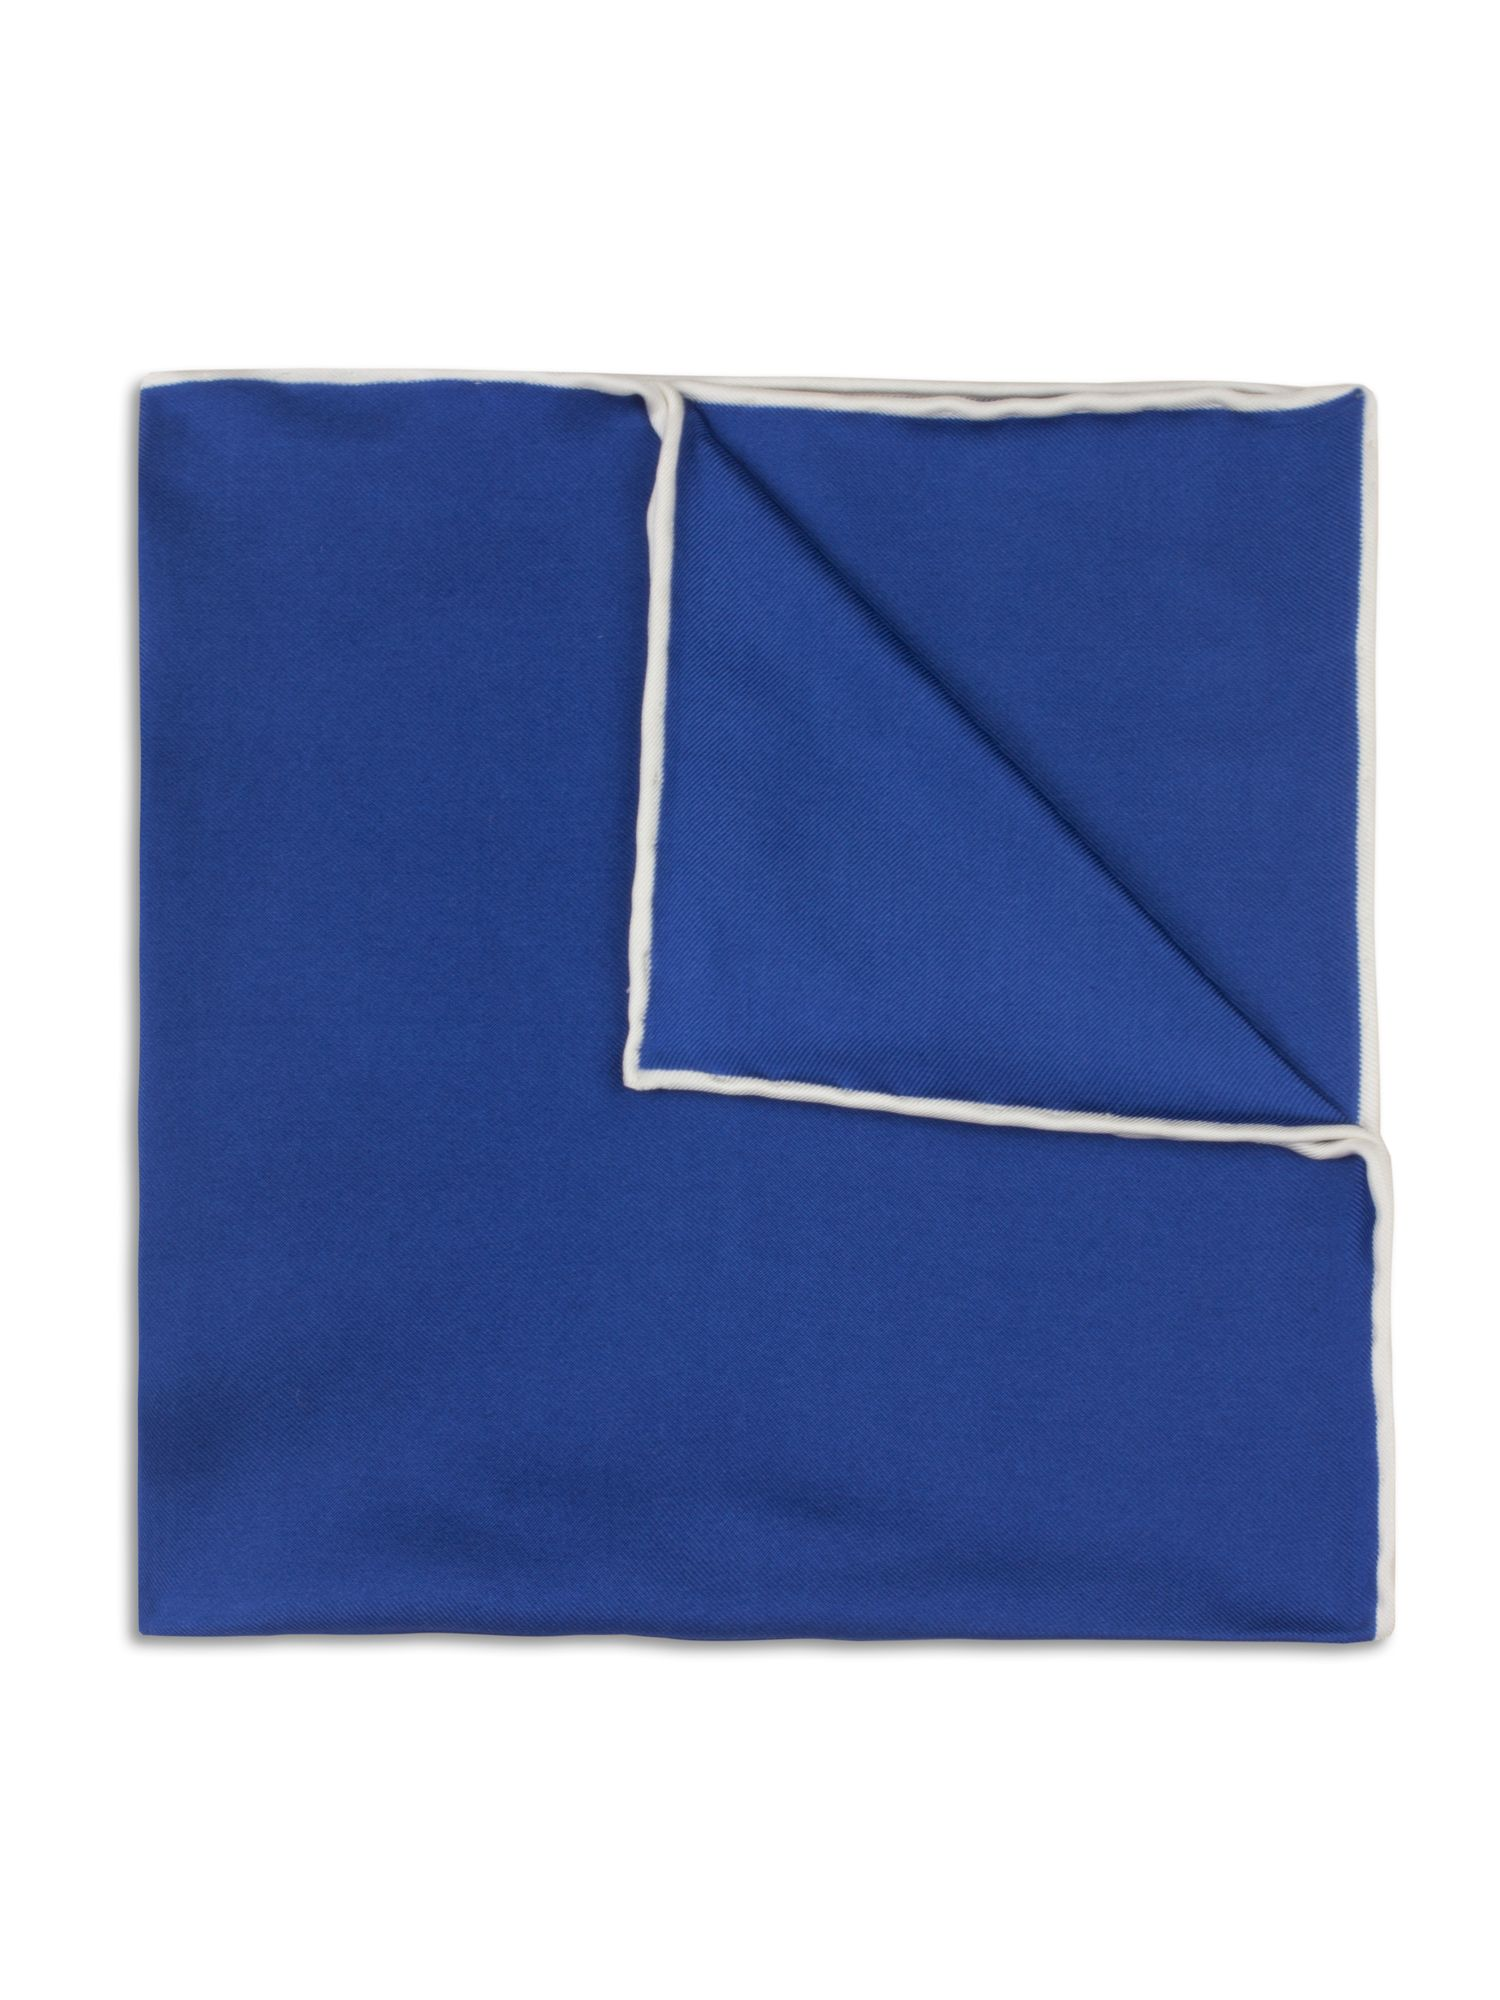 Navy hand rolled handkerchief